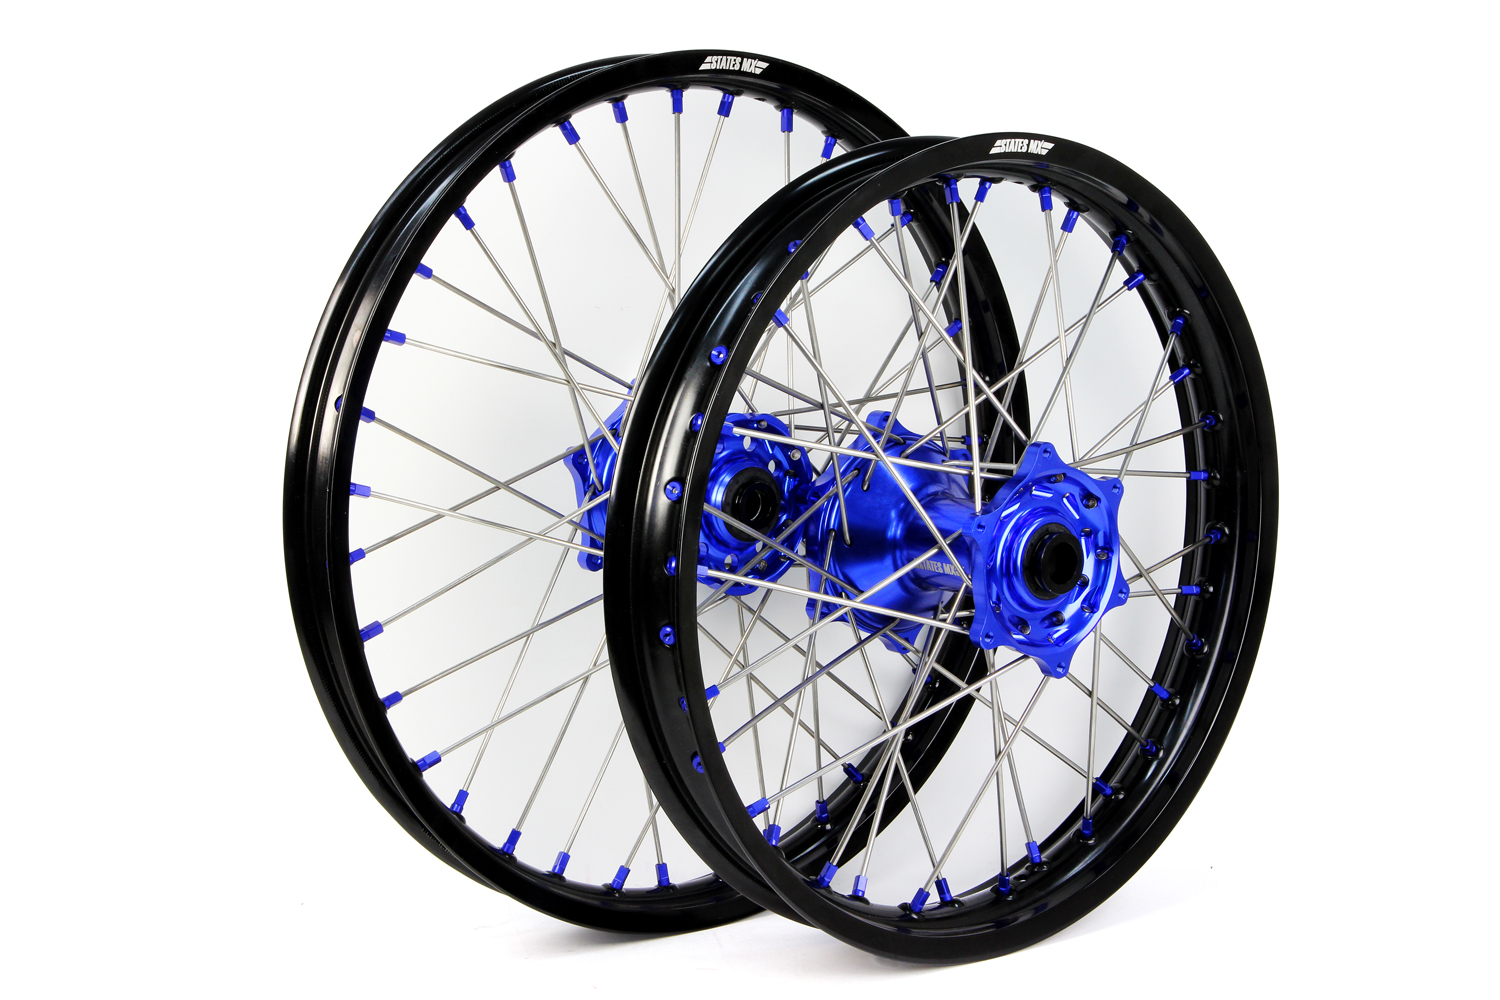 New Product: States MX Wheel Sets